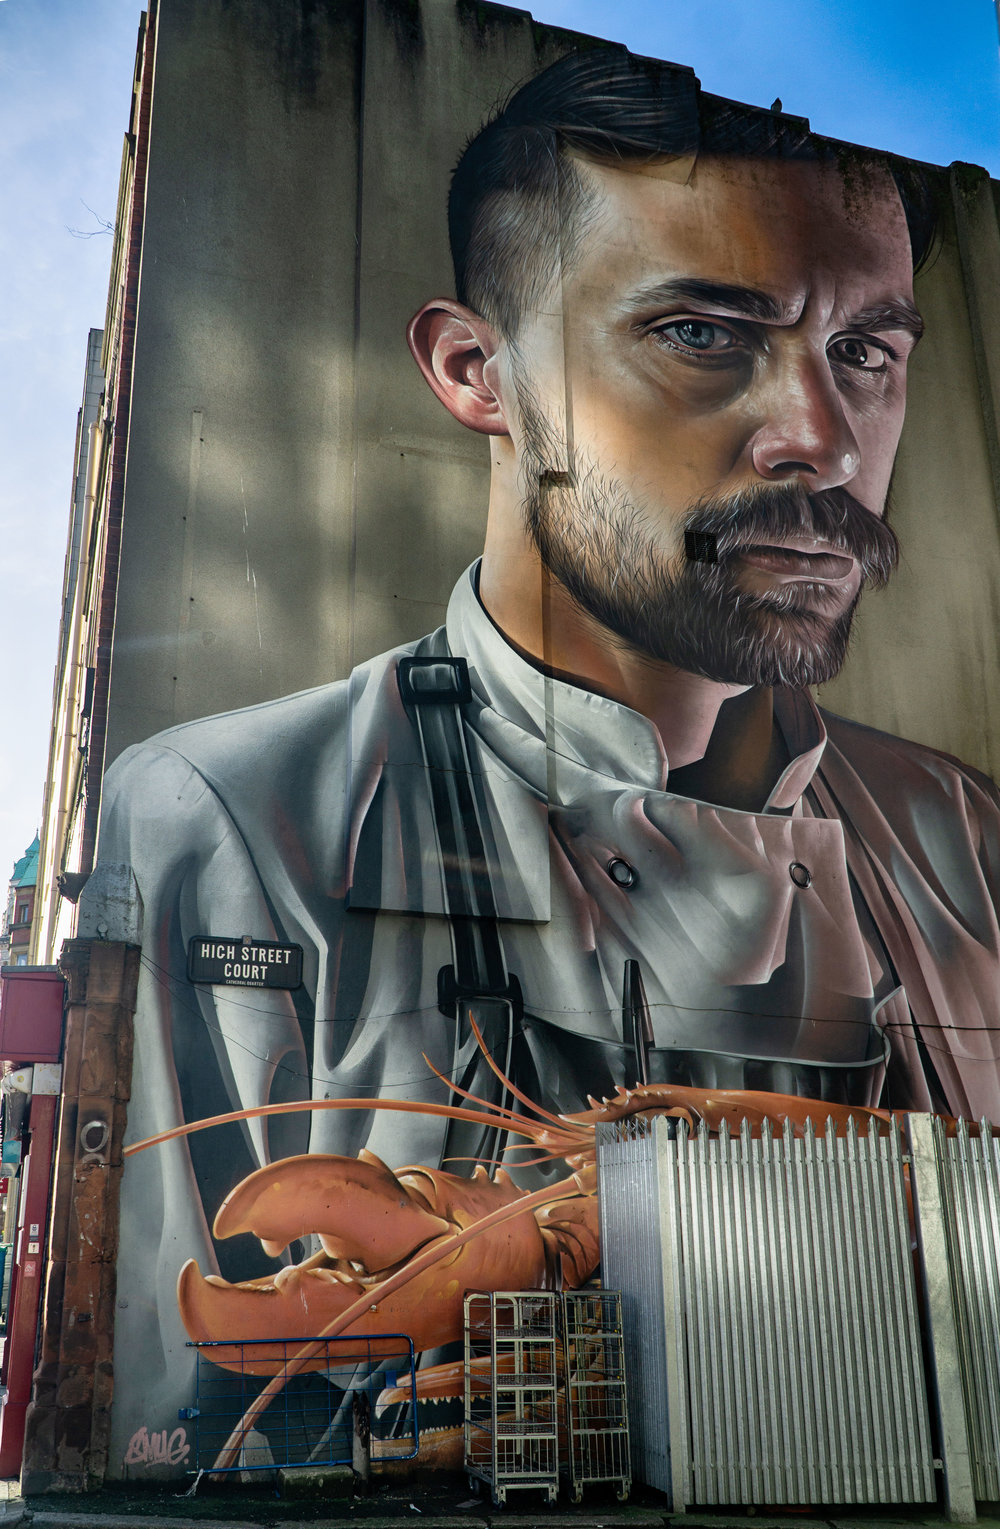 belfast_mural_vickygood_travel_photography2_sm.jpg